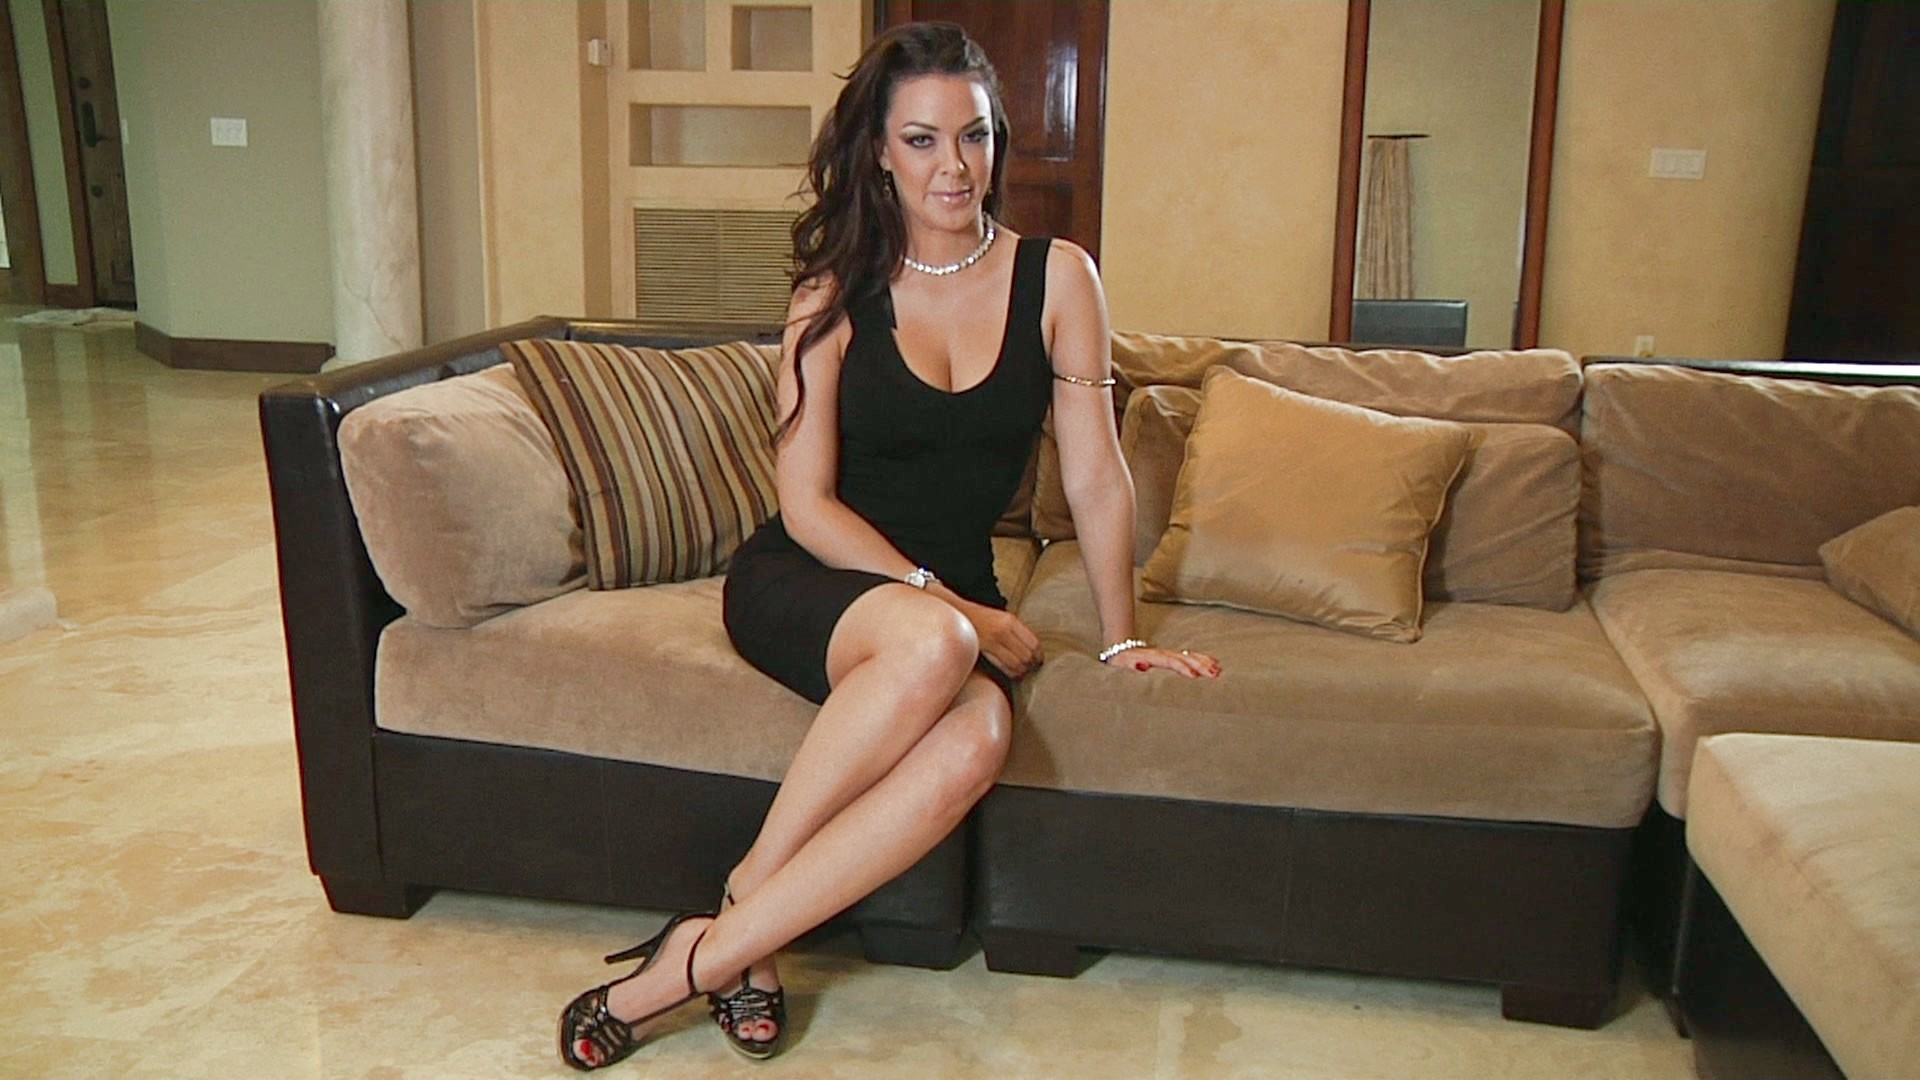 high island mature women personals Classifieds: rentals wanted click here to  down island preferred 508-648- 0136  mature women, long time vineyard resident seeking year round housing  quiet  cross-country invitational puts high school sports season into high gear.